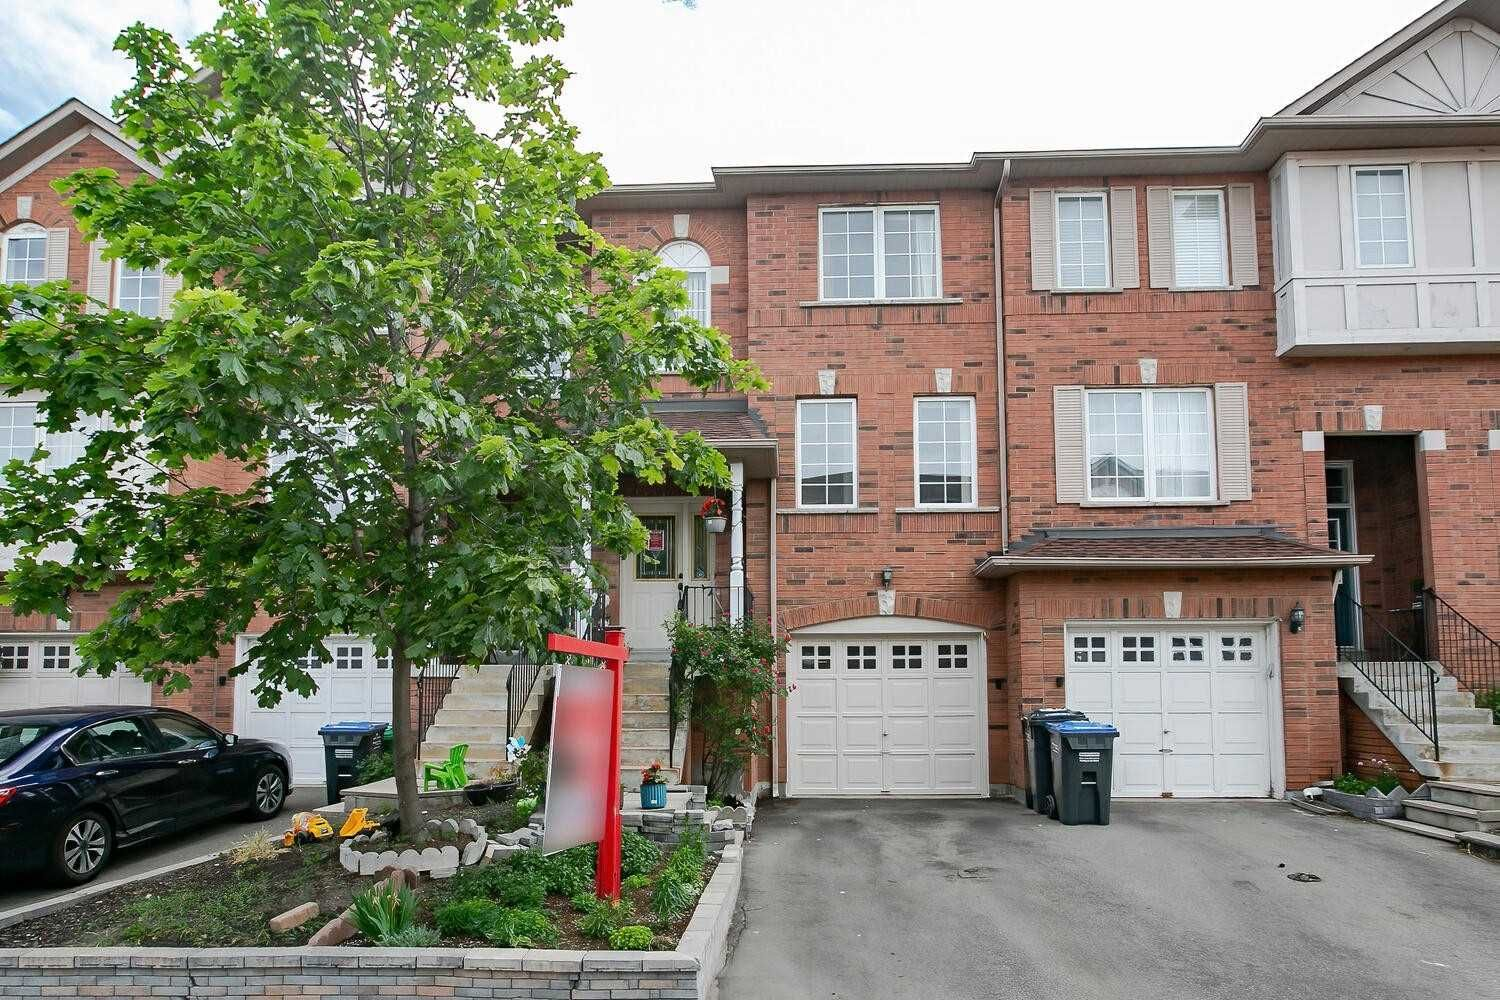 170 Havelock Dr, unit 79 for sale in Toronto - image #1